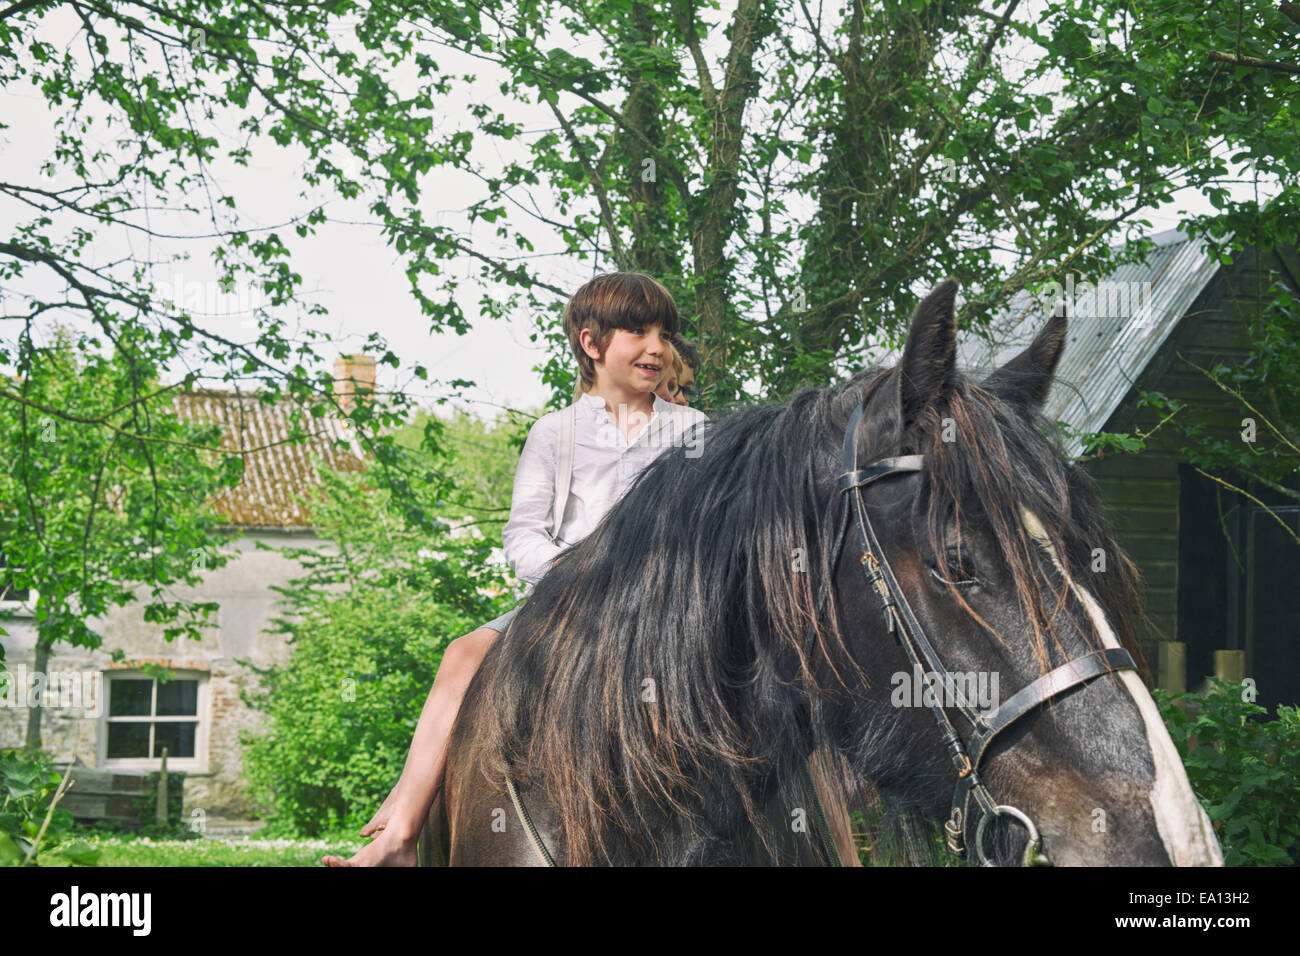 Three boys riding on horse at farm - Stock Image